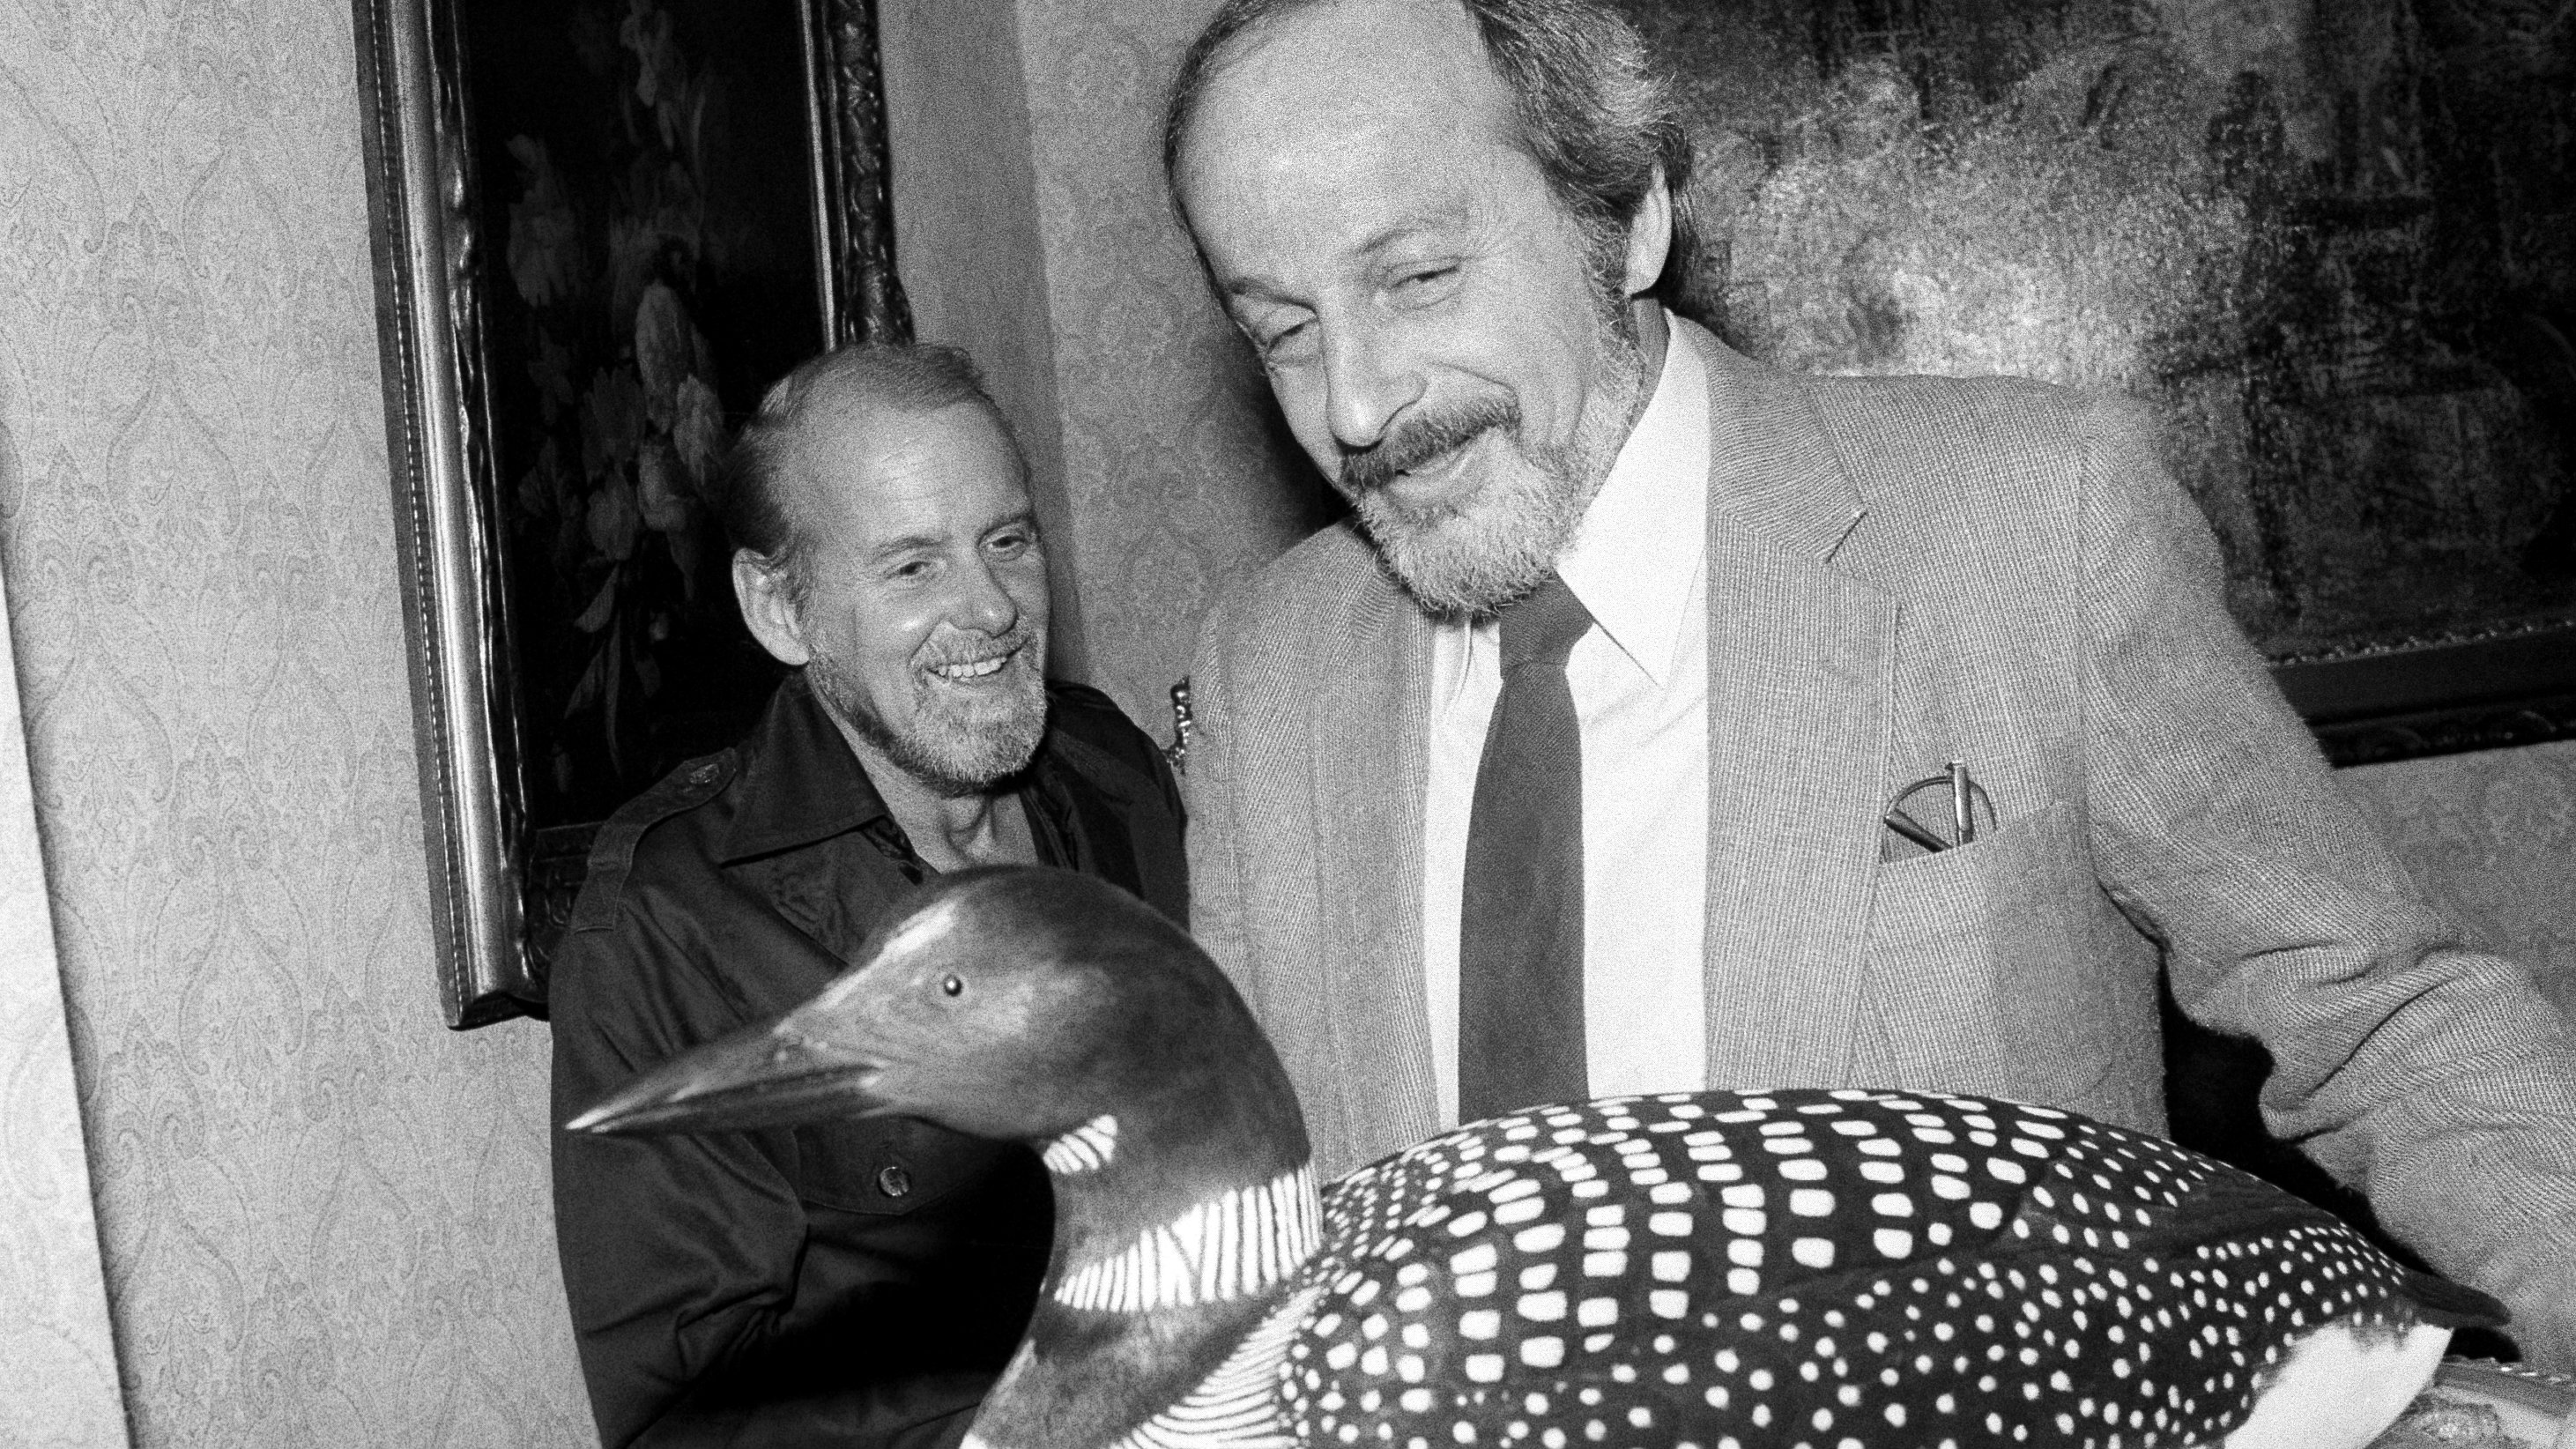 """Author E. L. Doctorow admires a hand-carved loon presented to him at a party in New York on Sept. 25, 1980, while Bob Fosse looks on. Doctorow, author of best seller """"Ragtime,"""" has a new novel which will be on the best seller list next week called """"Loon Lake."""""""